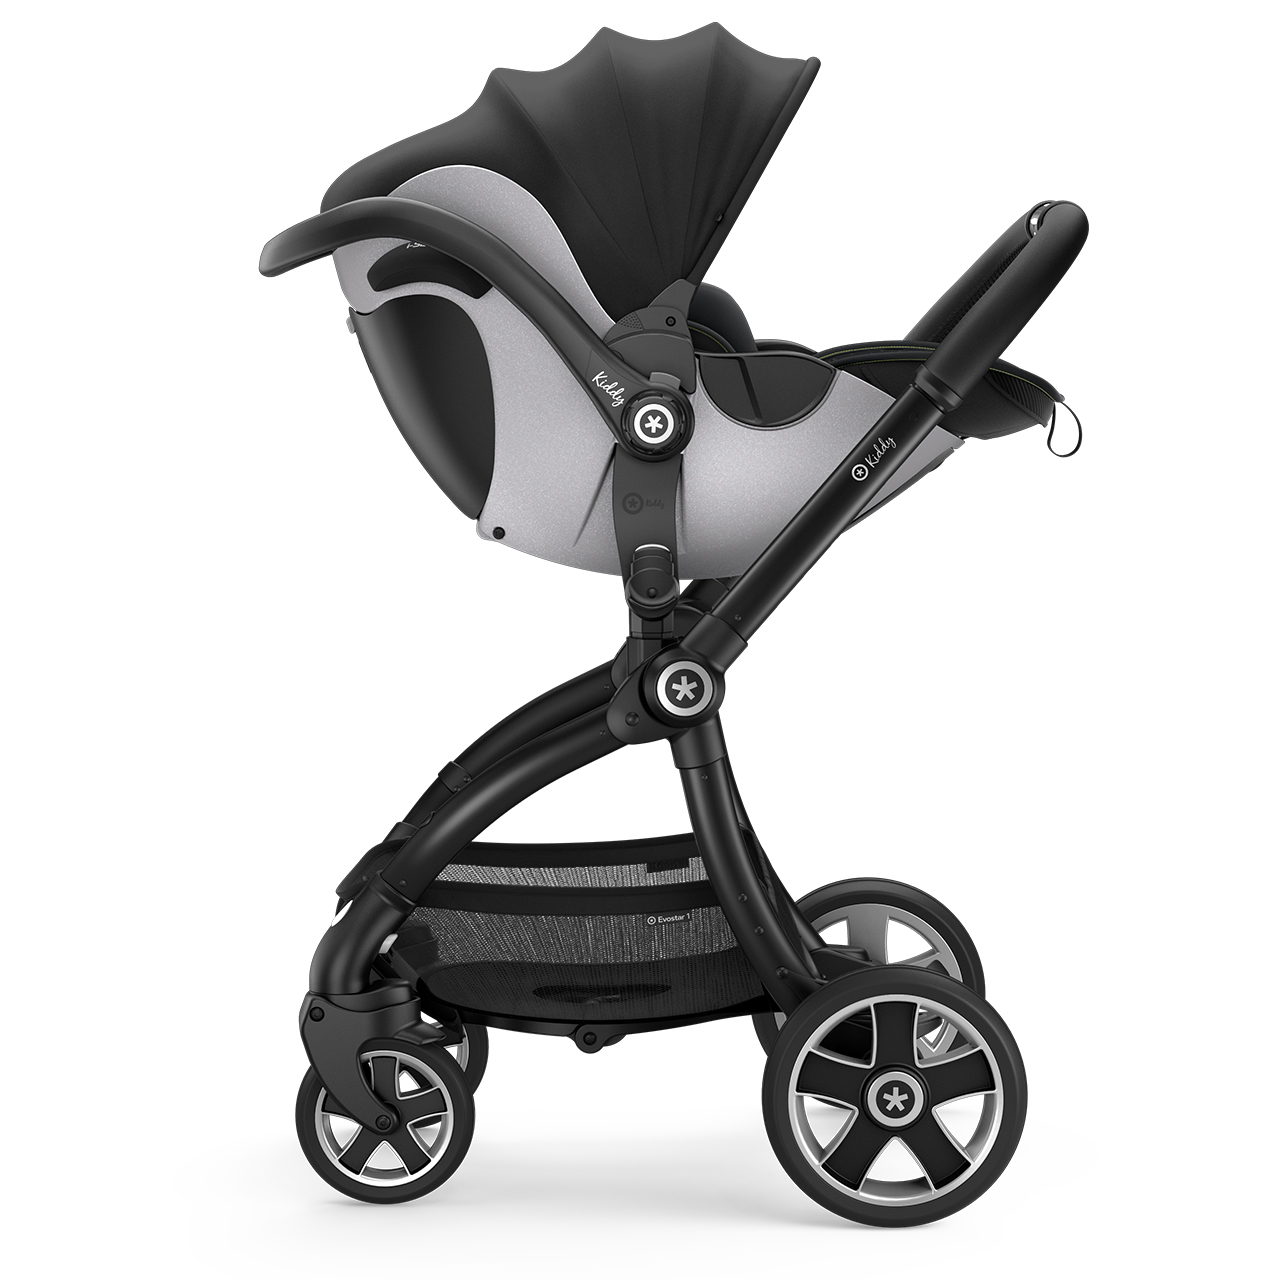 Автокресло детское Kiddy Evoluna i-Size 2 Speed Black GT